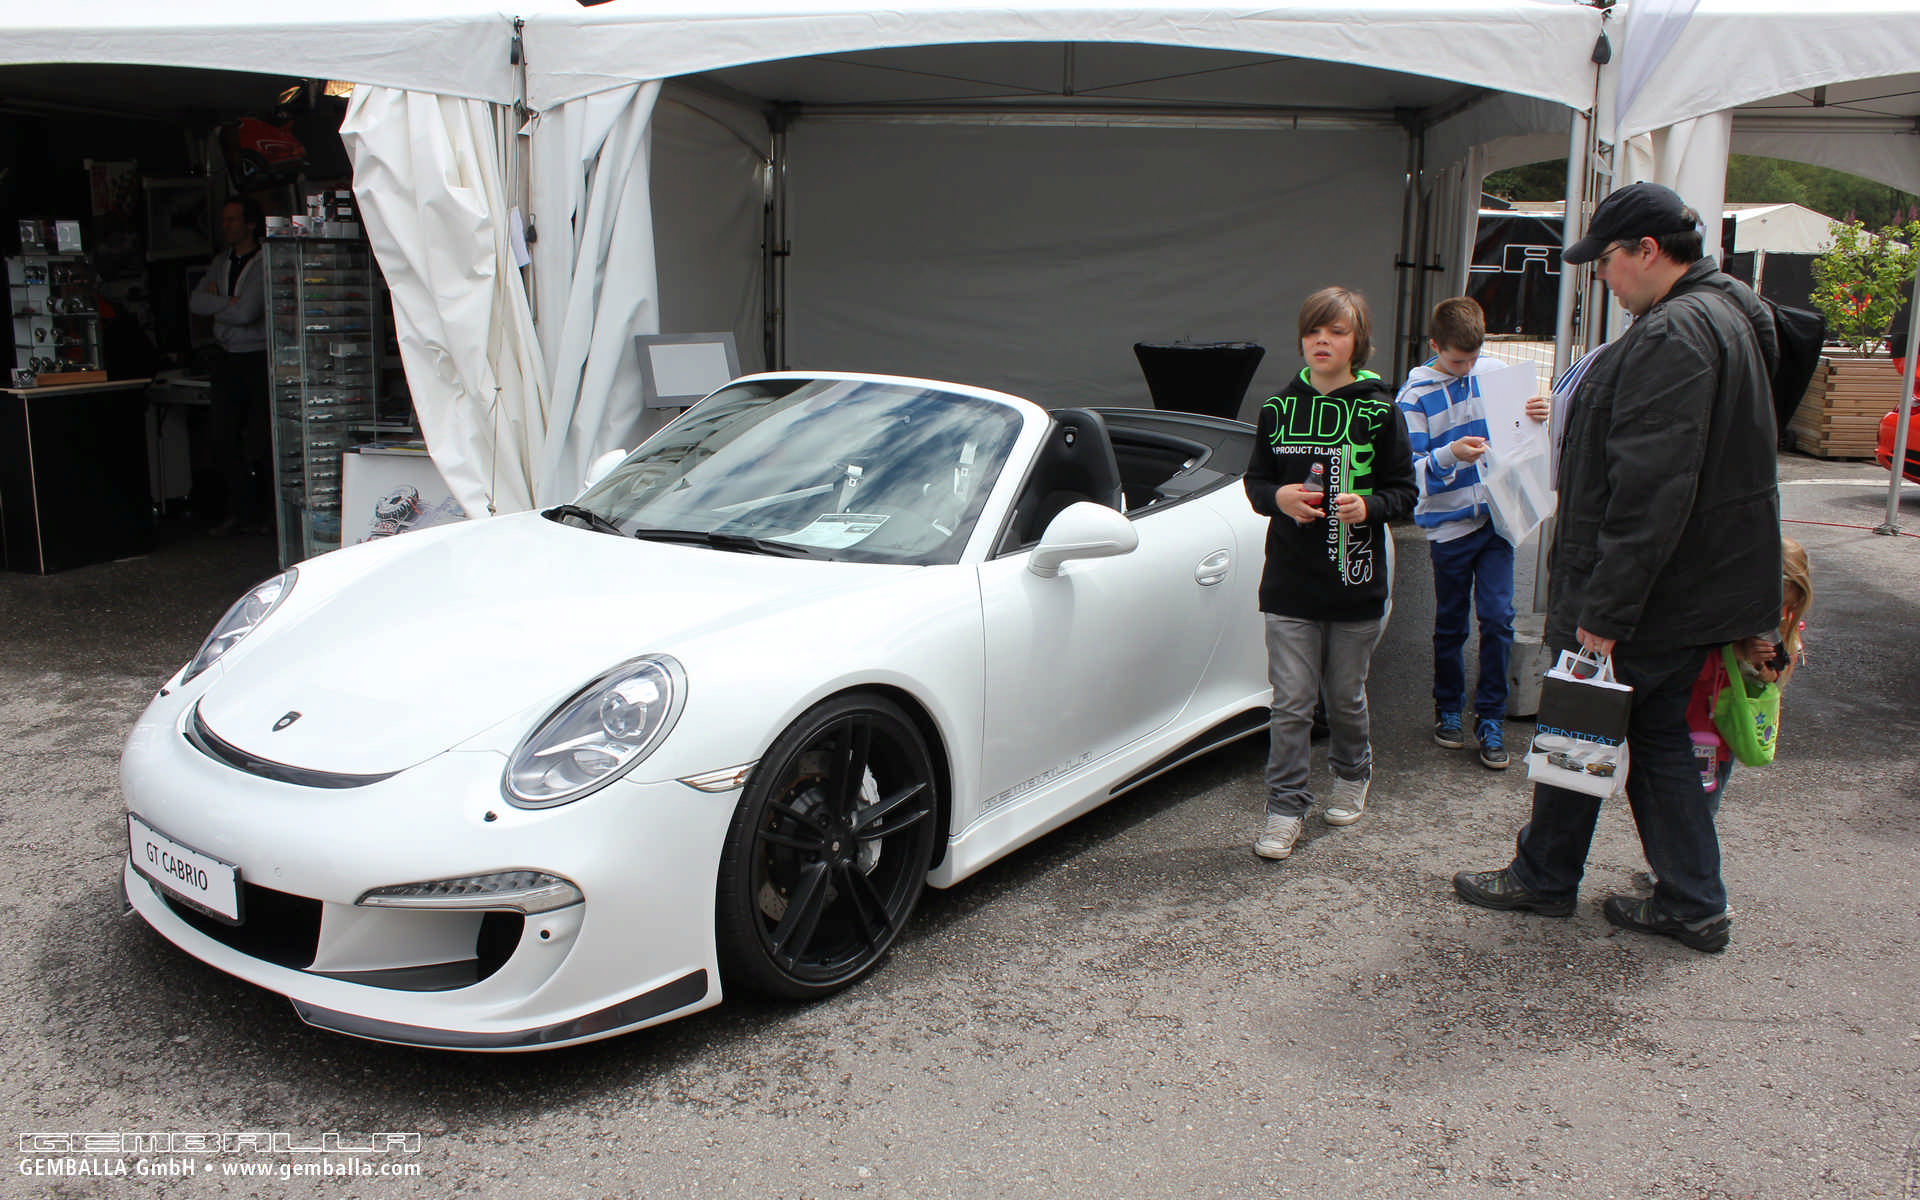 gemballa_gmbh_event_spa_2013_005